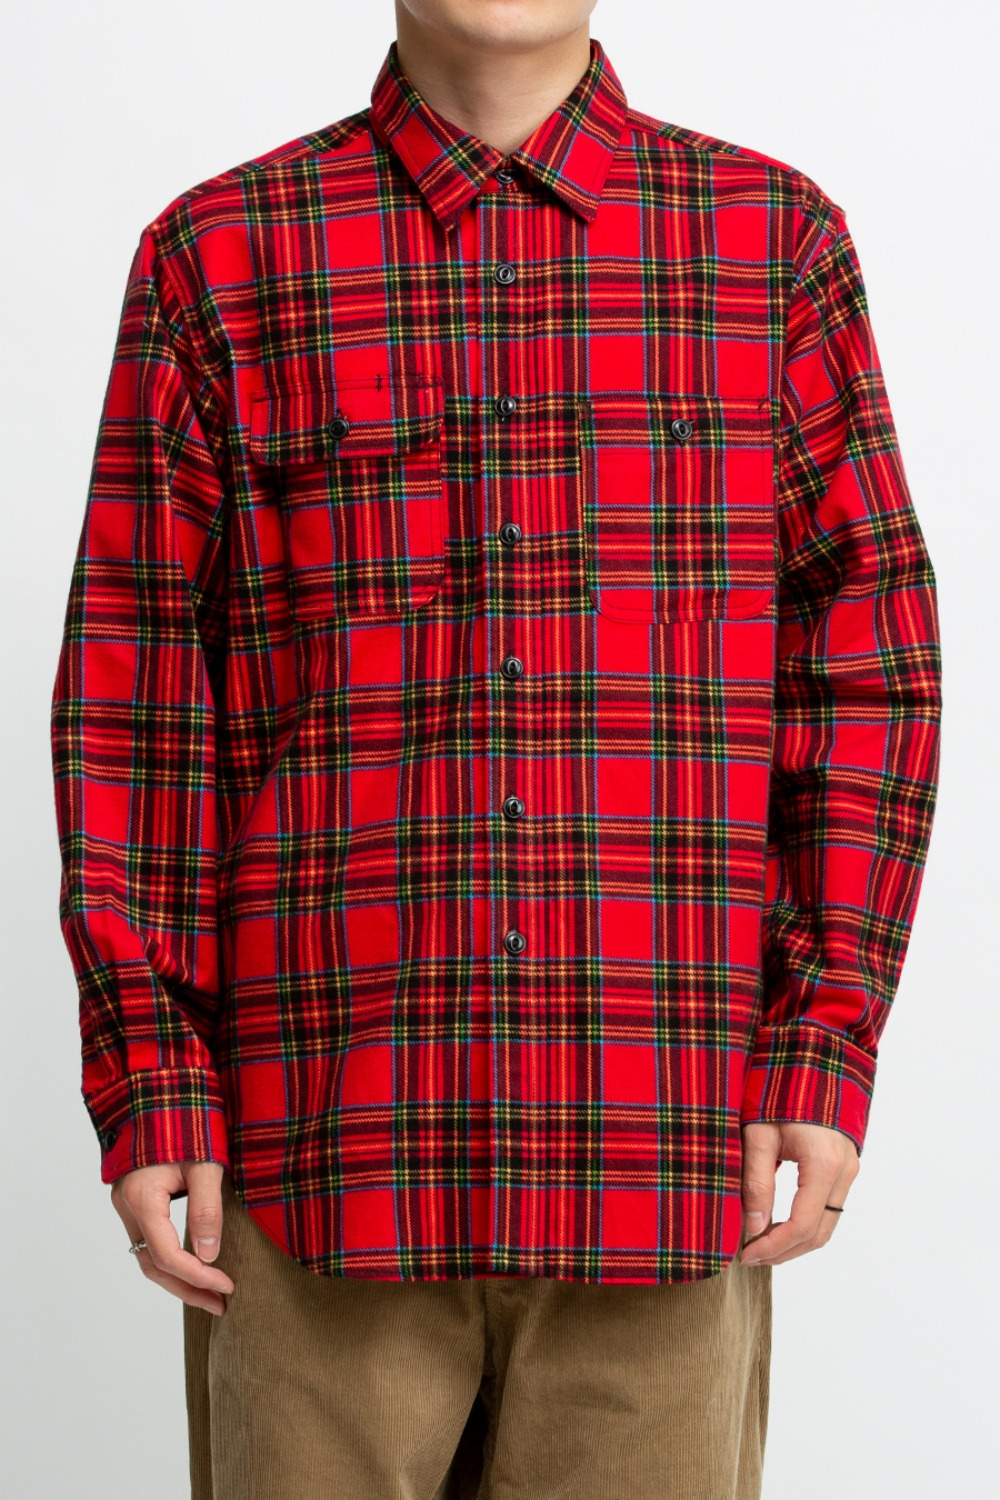 UTILITY SHIRT RED BLACK COTTON BRUSHED PLAID